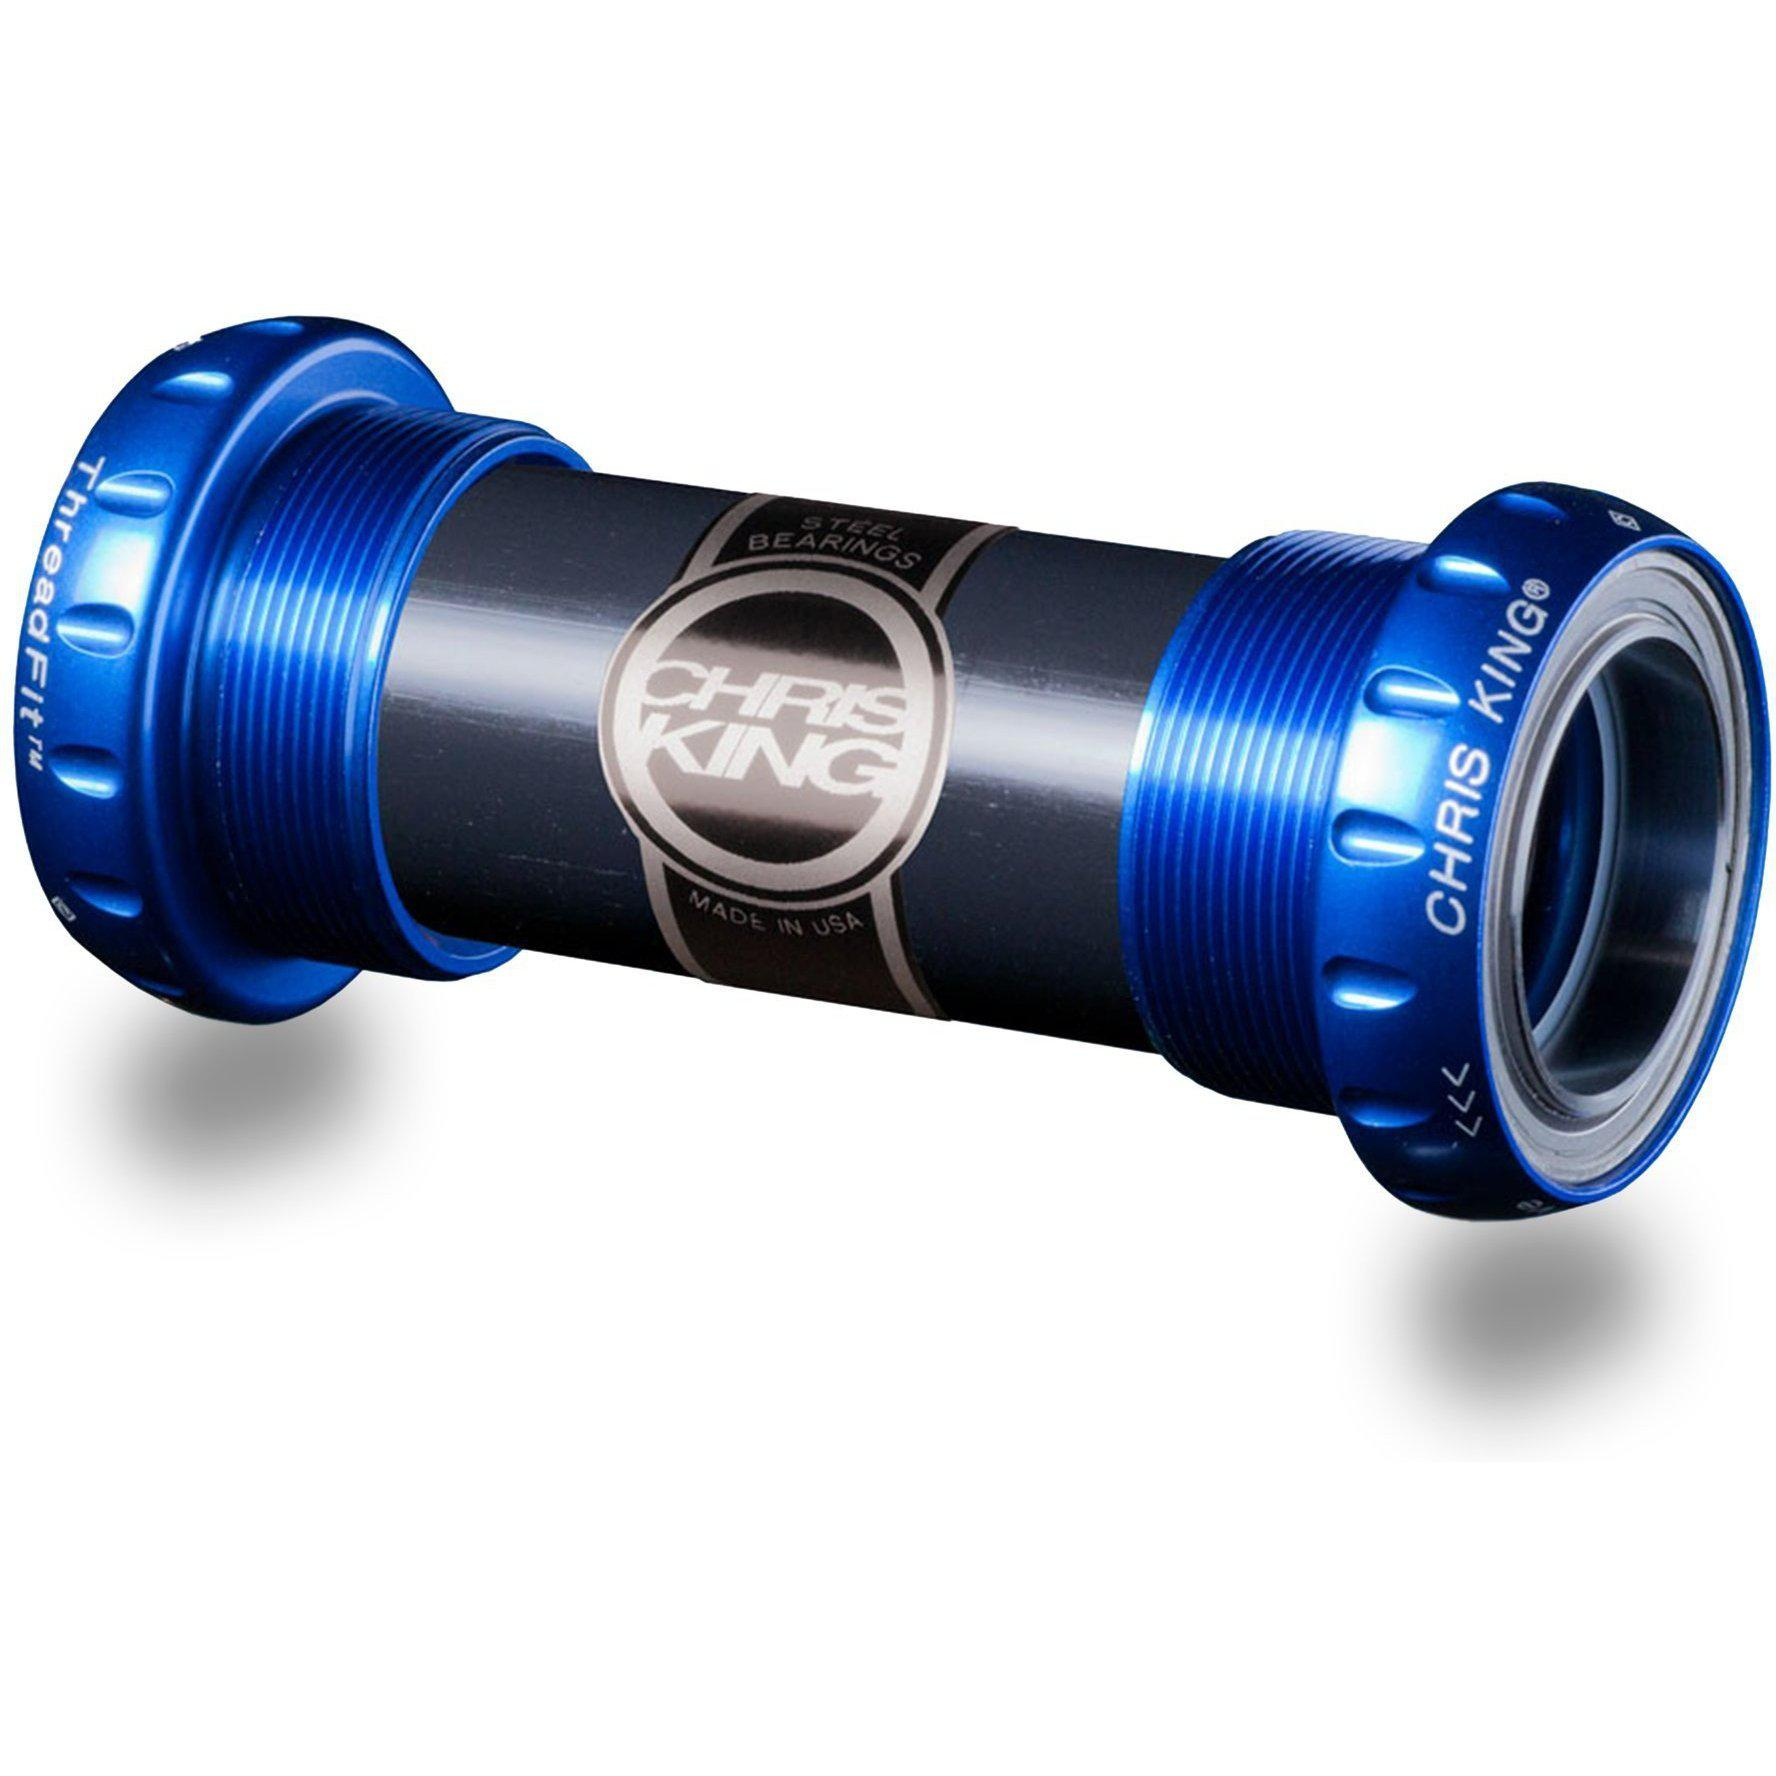 Chris King-Chris King Thread Fit 24 Bottom Bracket-BSA x 24 x 68 -73mm-Navy-CKFN0810-saddleback-elite-performance-cycling